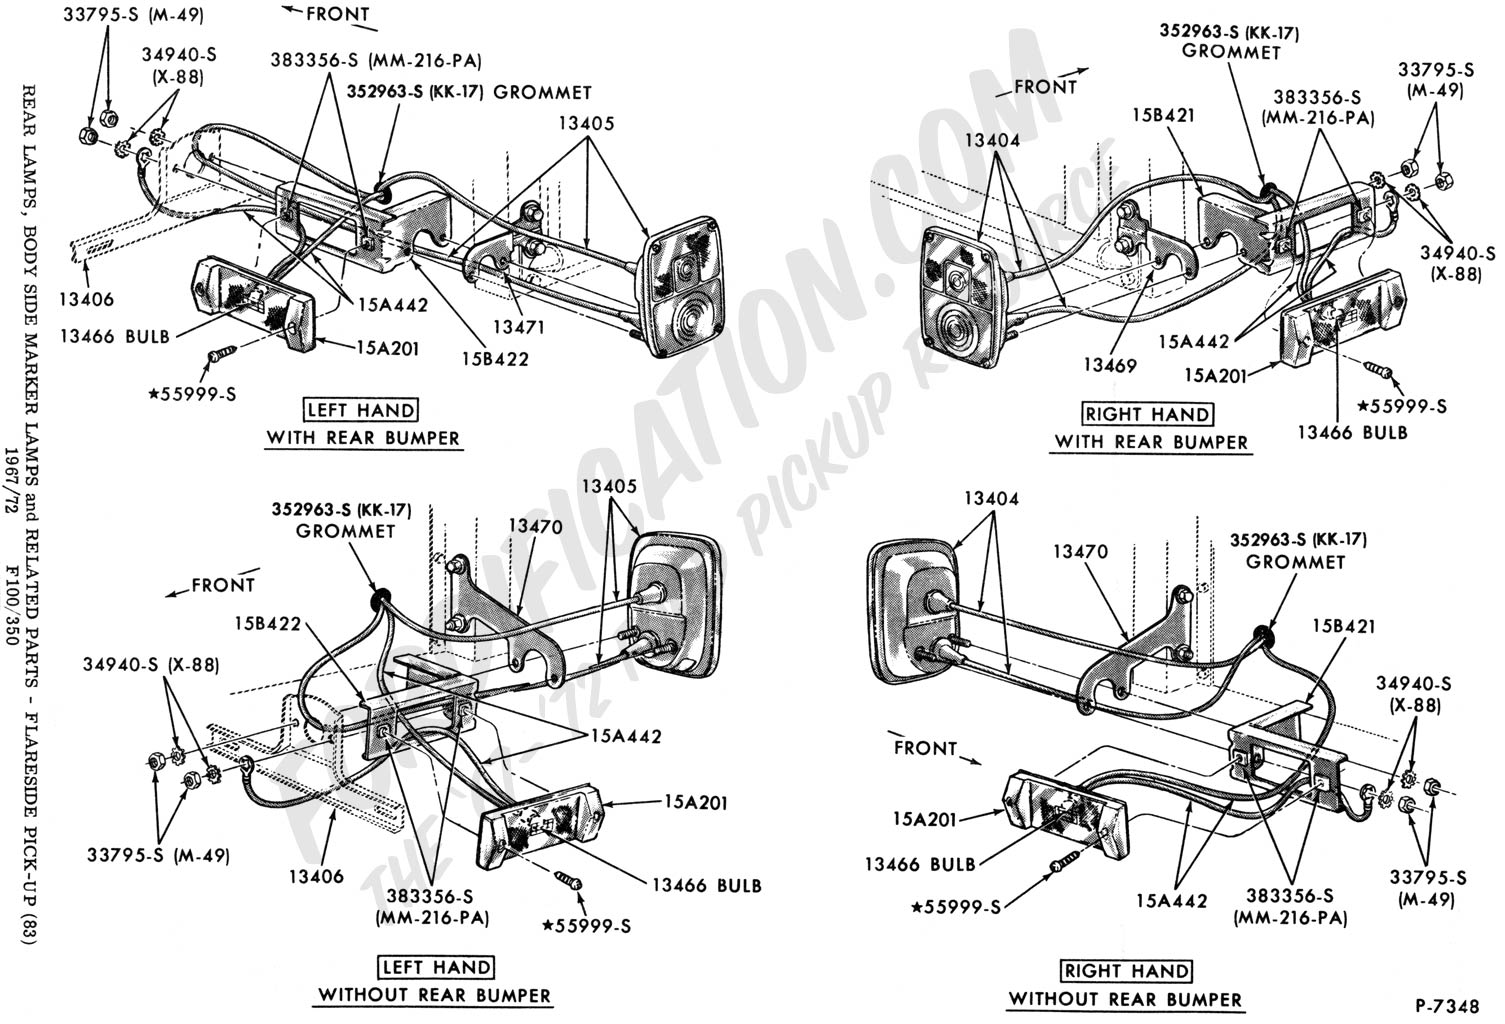 Ford Truck Technical Drawings And Schematics Section I 1990 Jeep Cherokee 4 0 Vacuum Hose Diagram Wiring Electrical